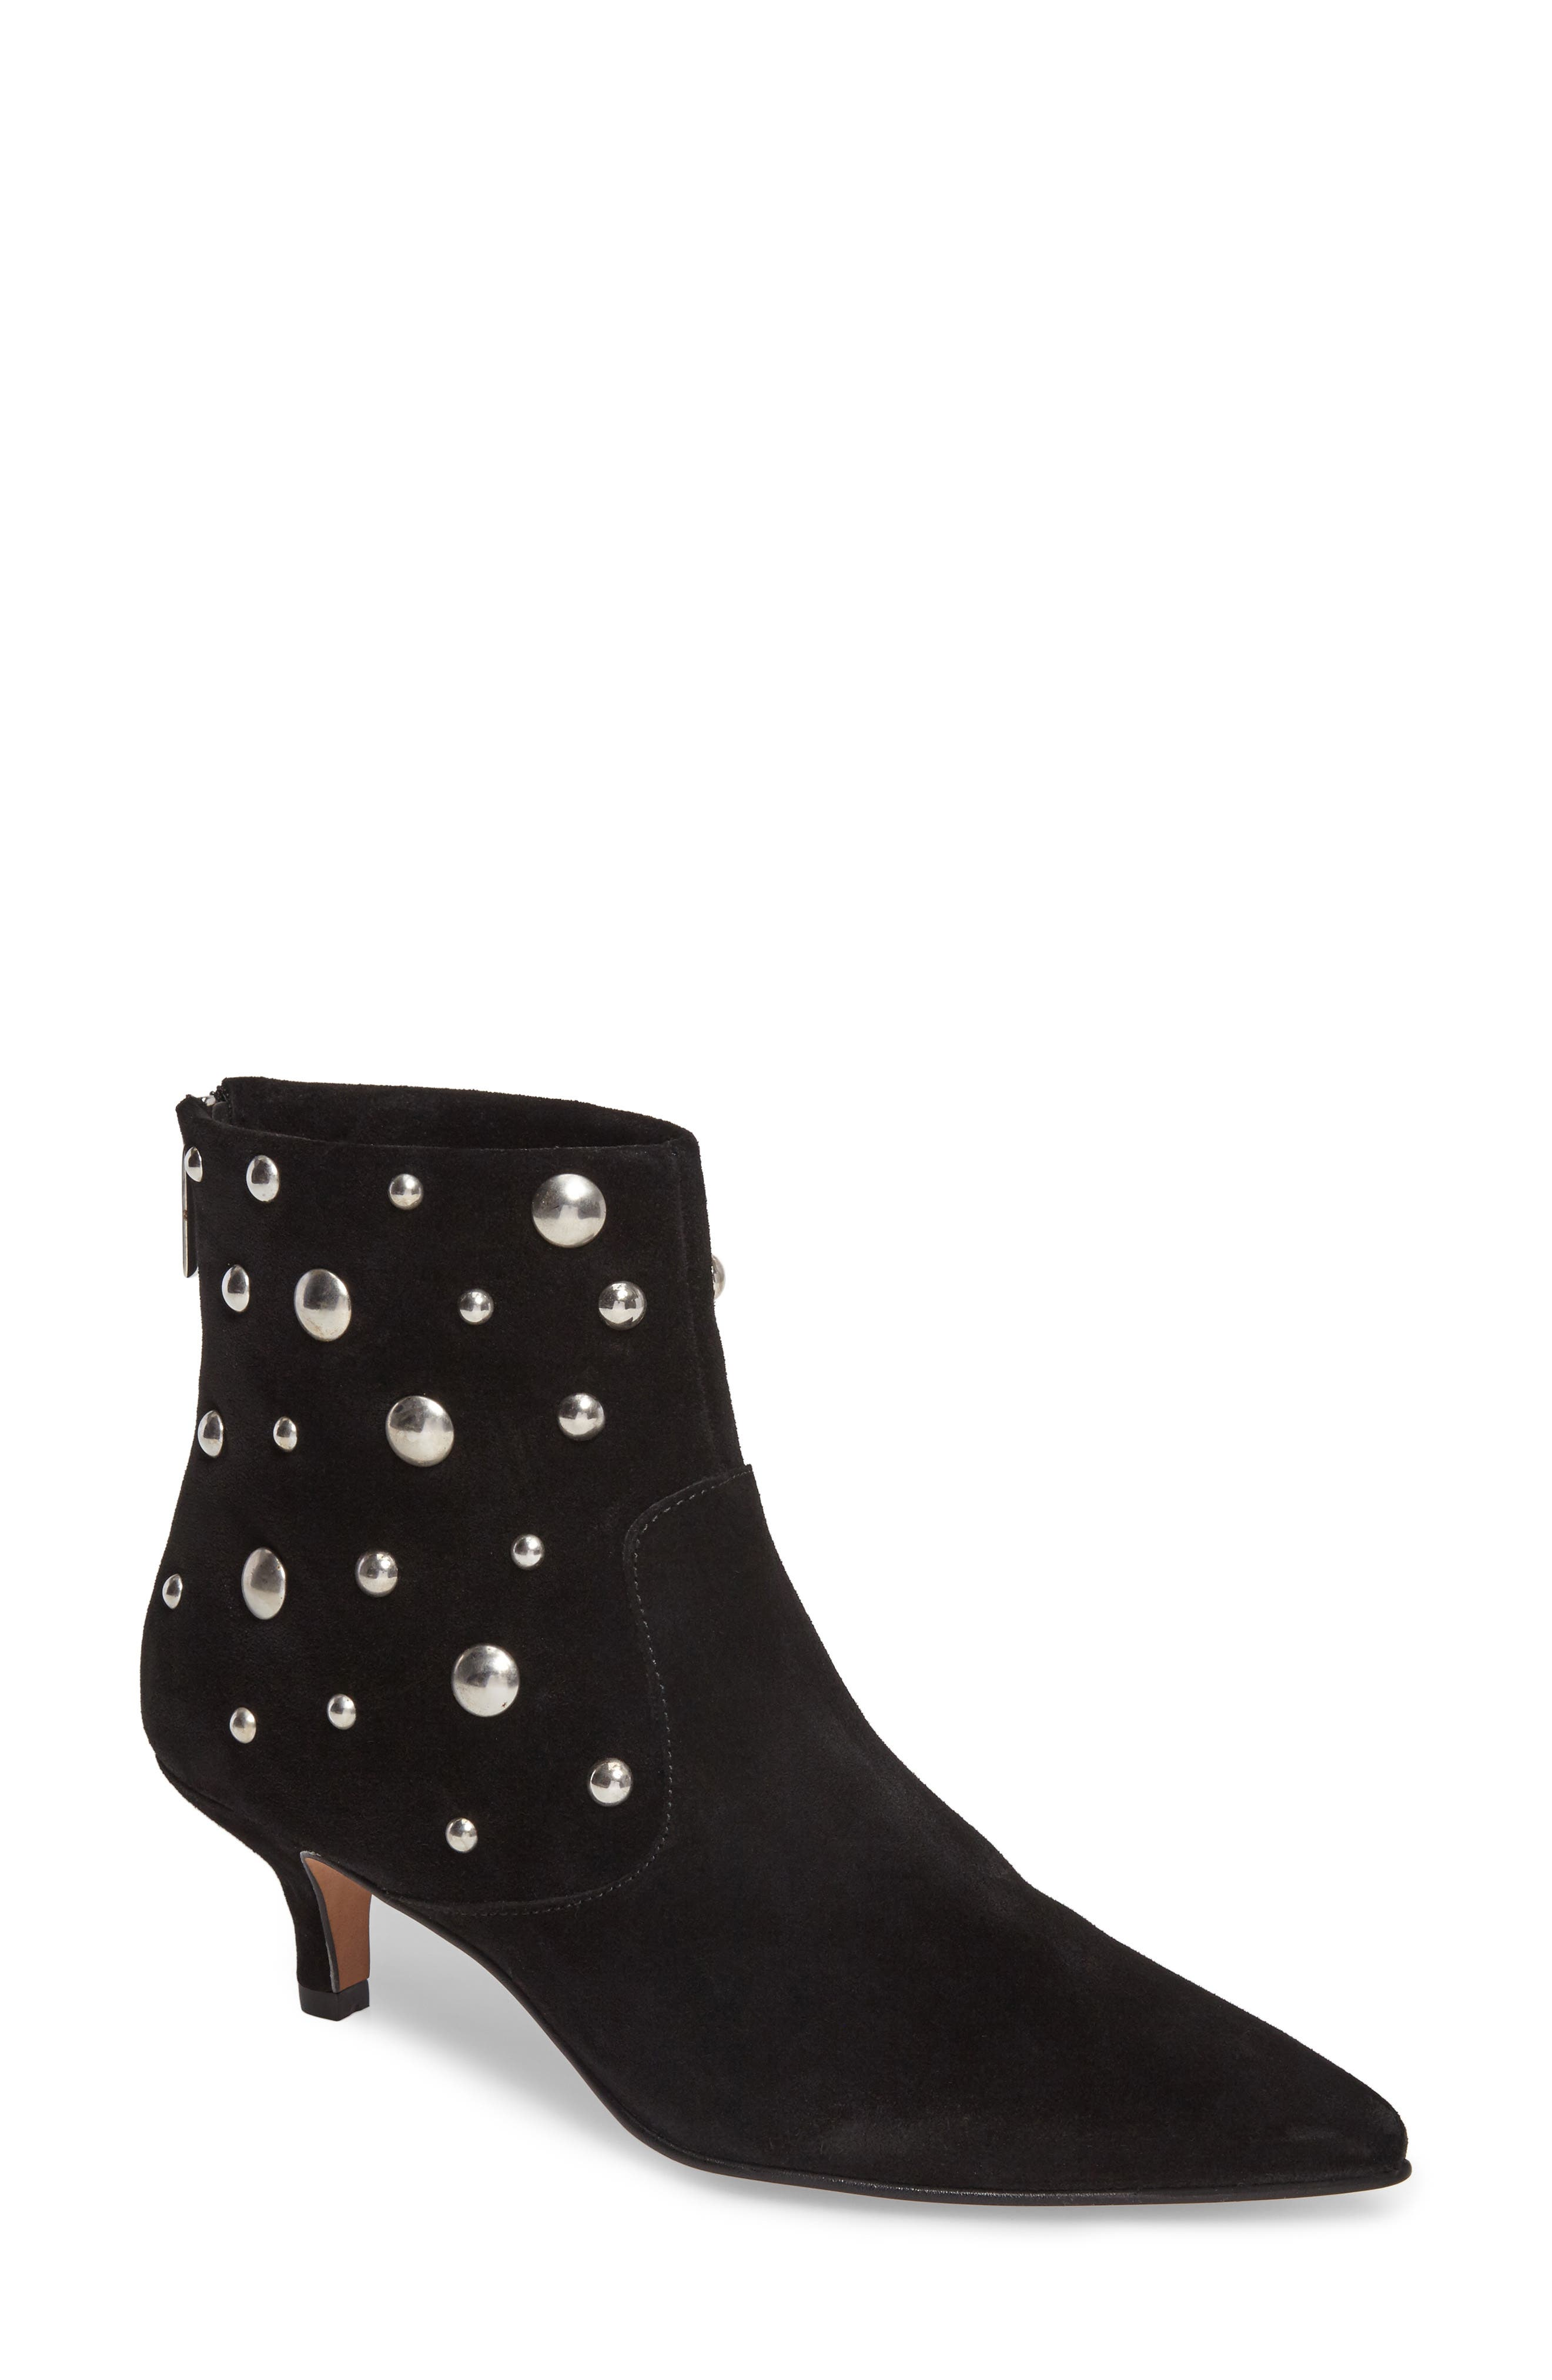 Main Image - Topshop Ascot Studded Pointy Toe Bootie (Women)